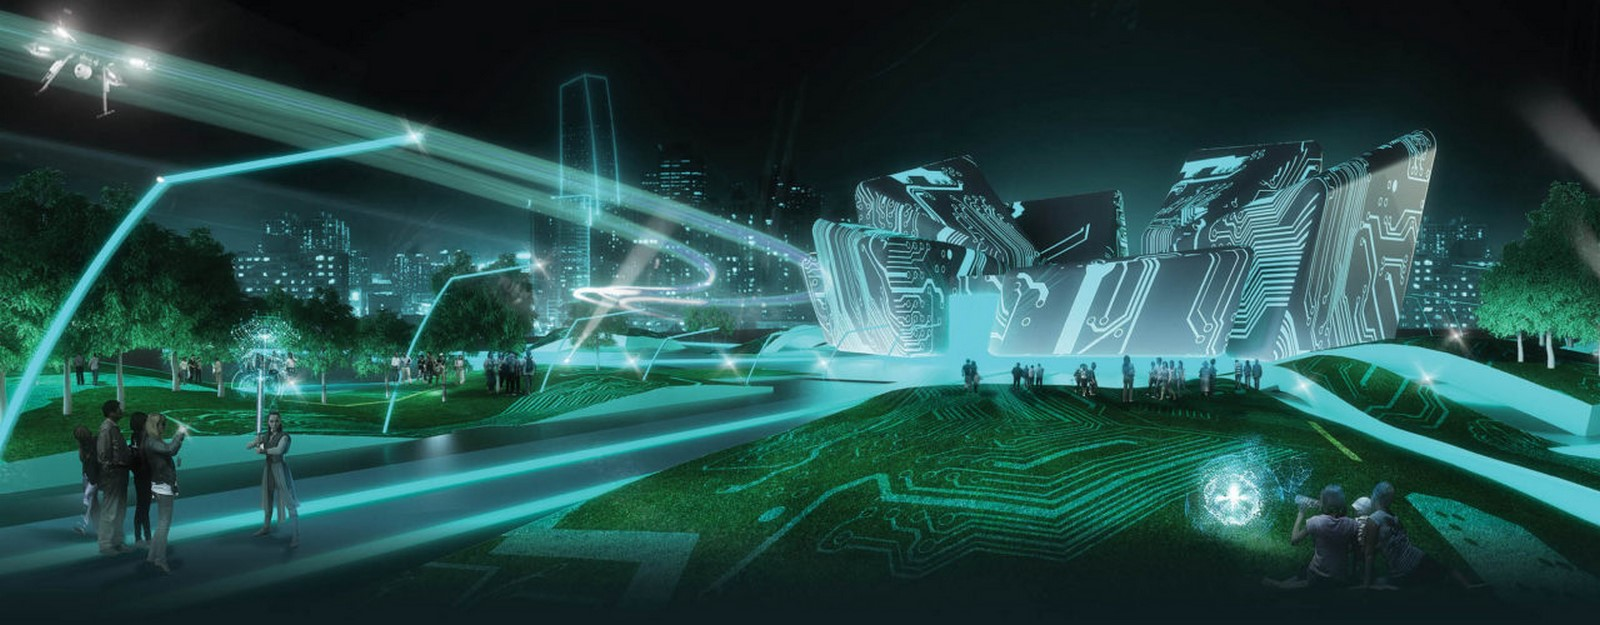 How virtual games are advancing in architecture design- Sheet4